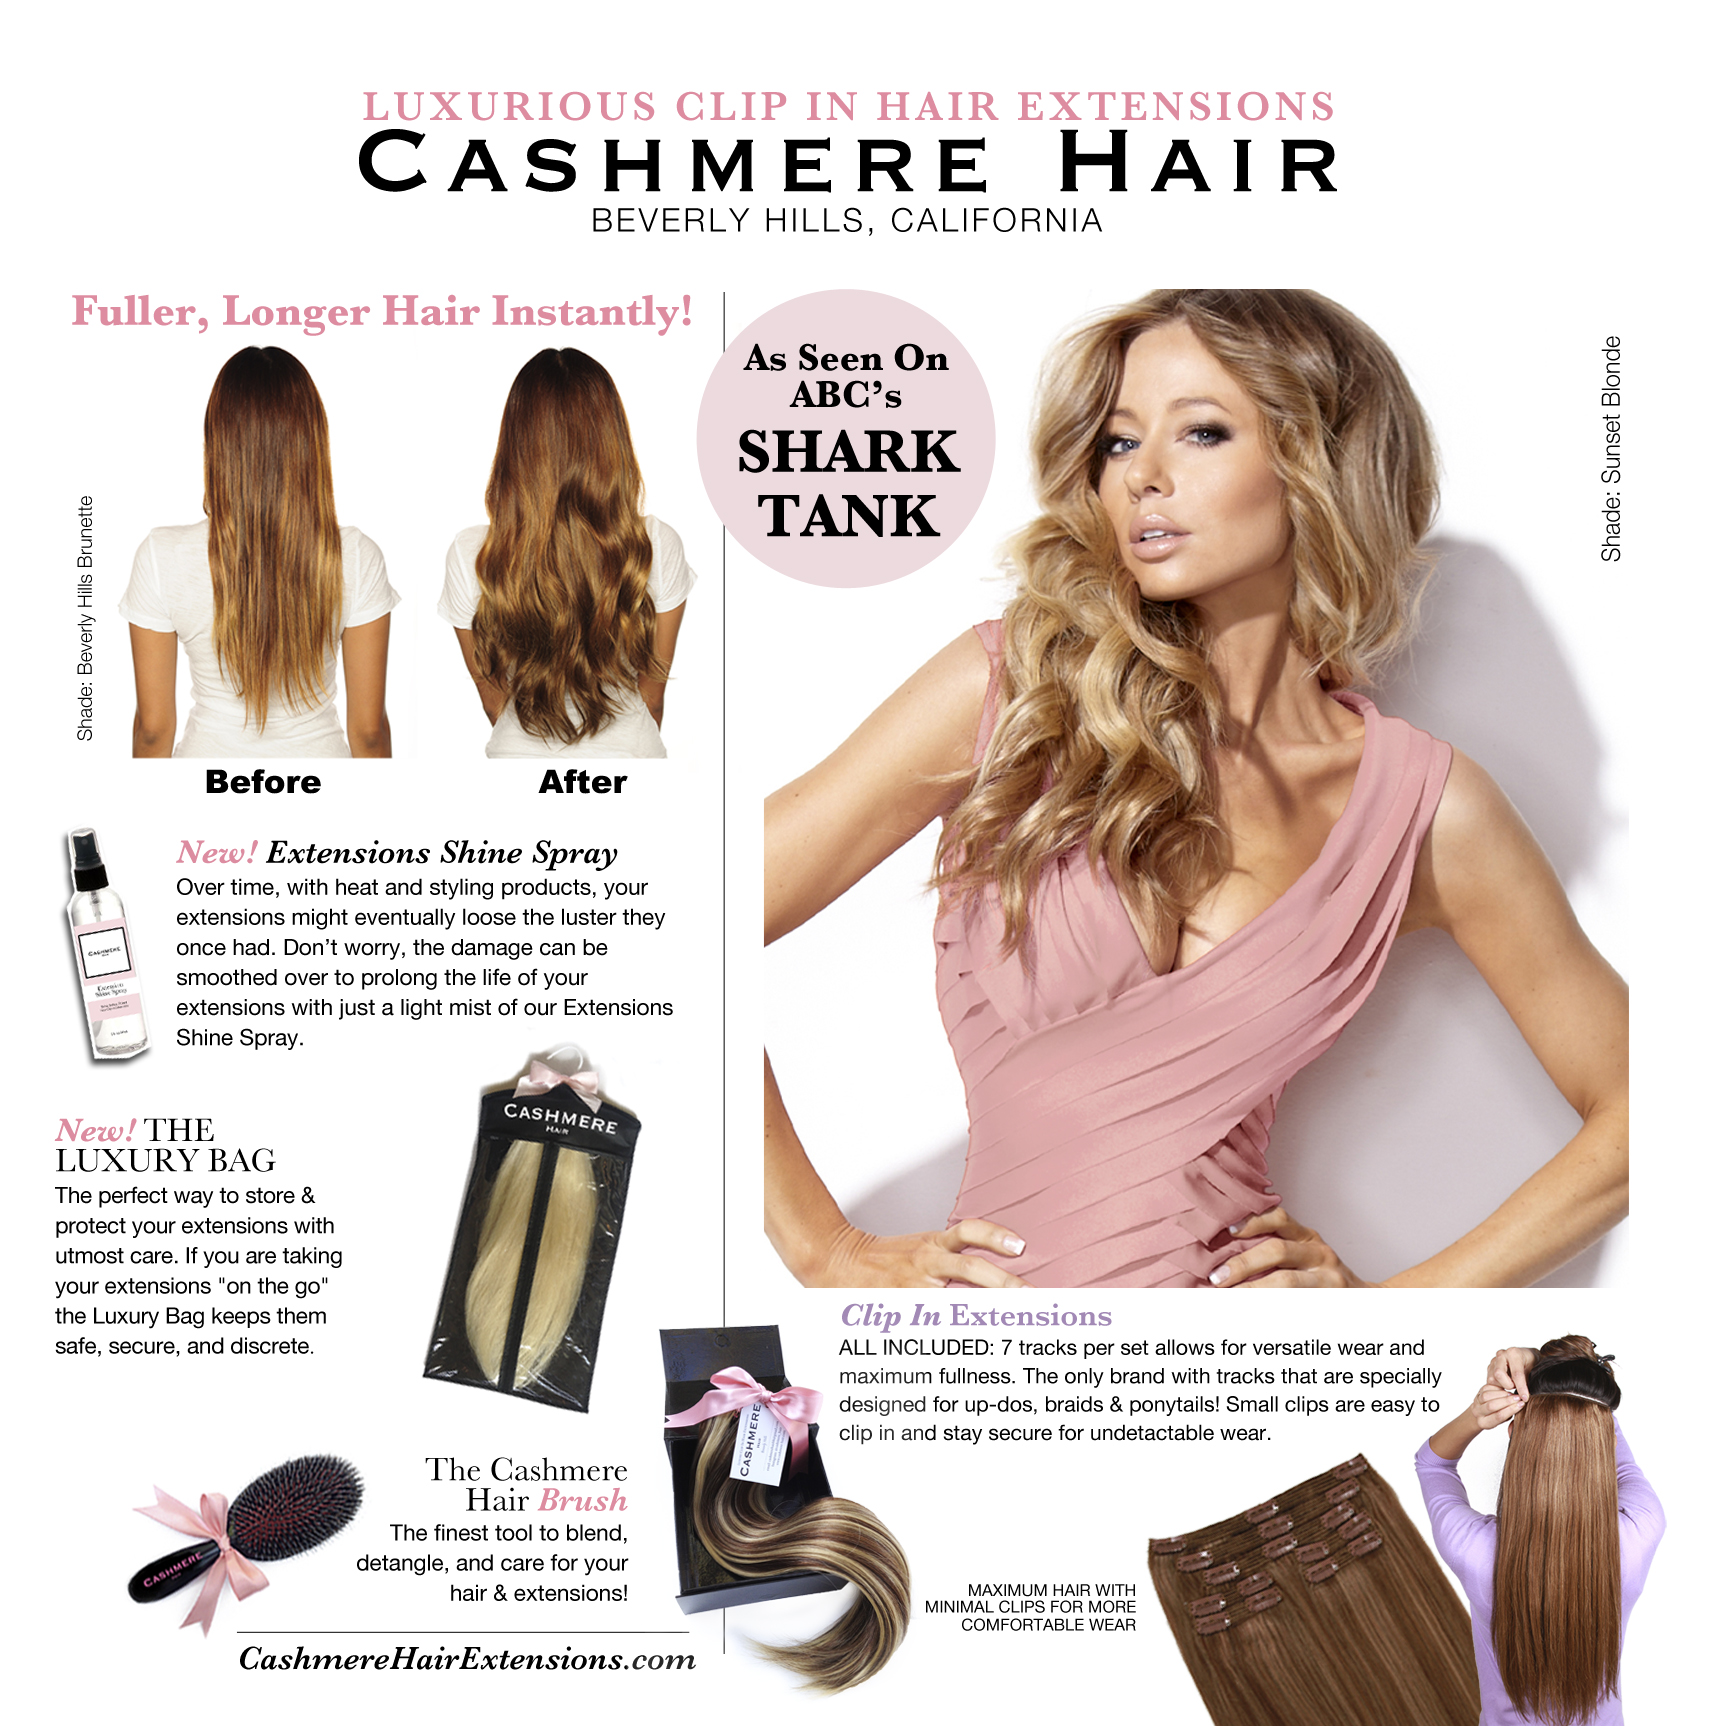 May 2014 Cashmere Hair Press Release Cashmere Hair Clip In Extensions